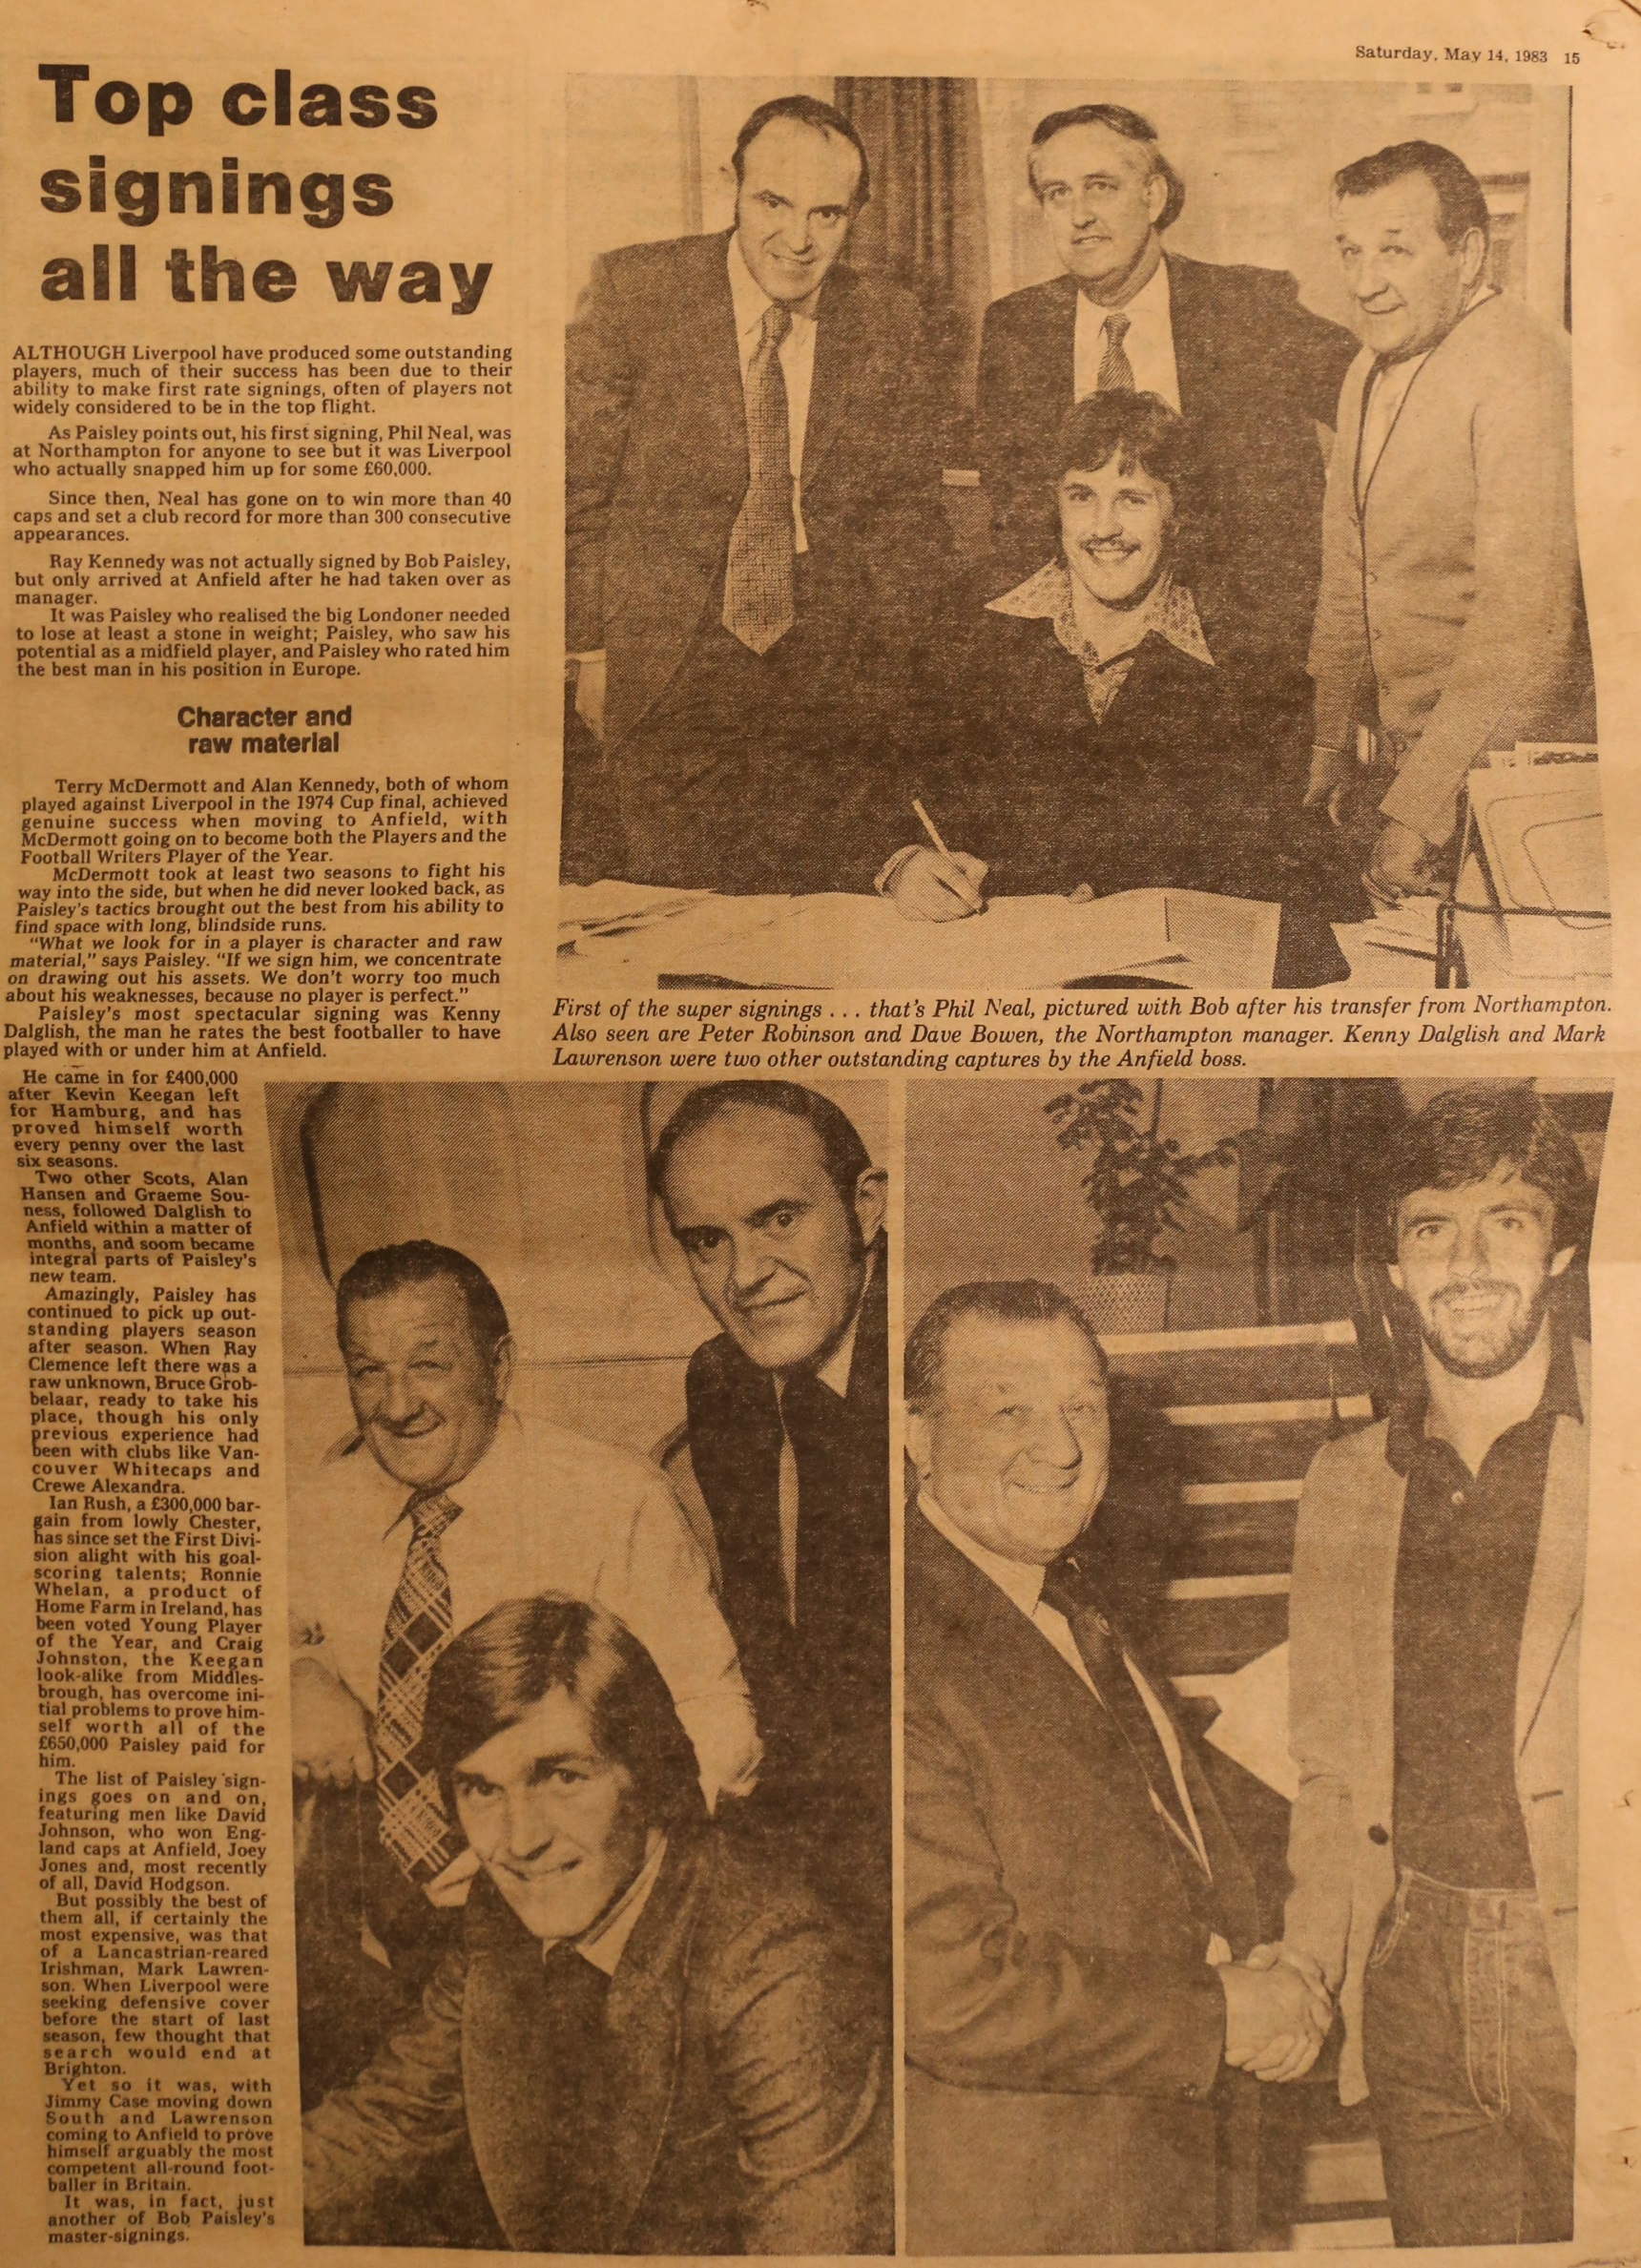 Top class signings all the way - 14 May 1983